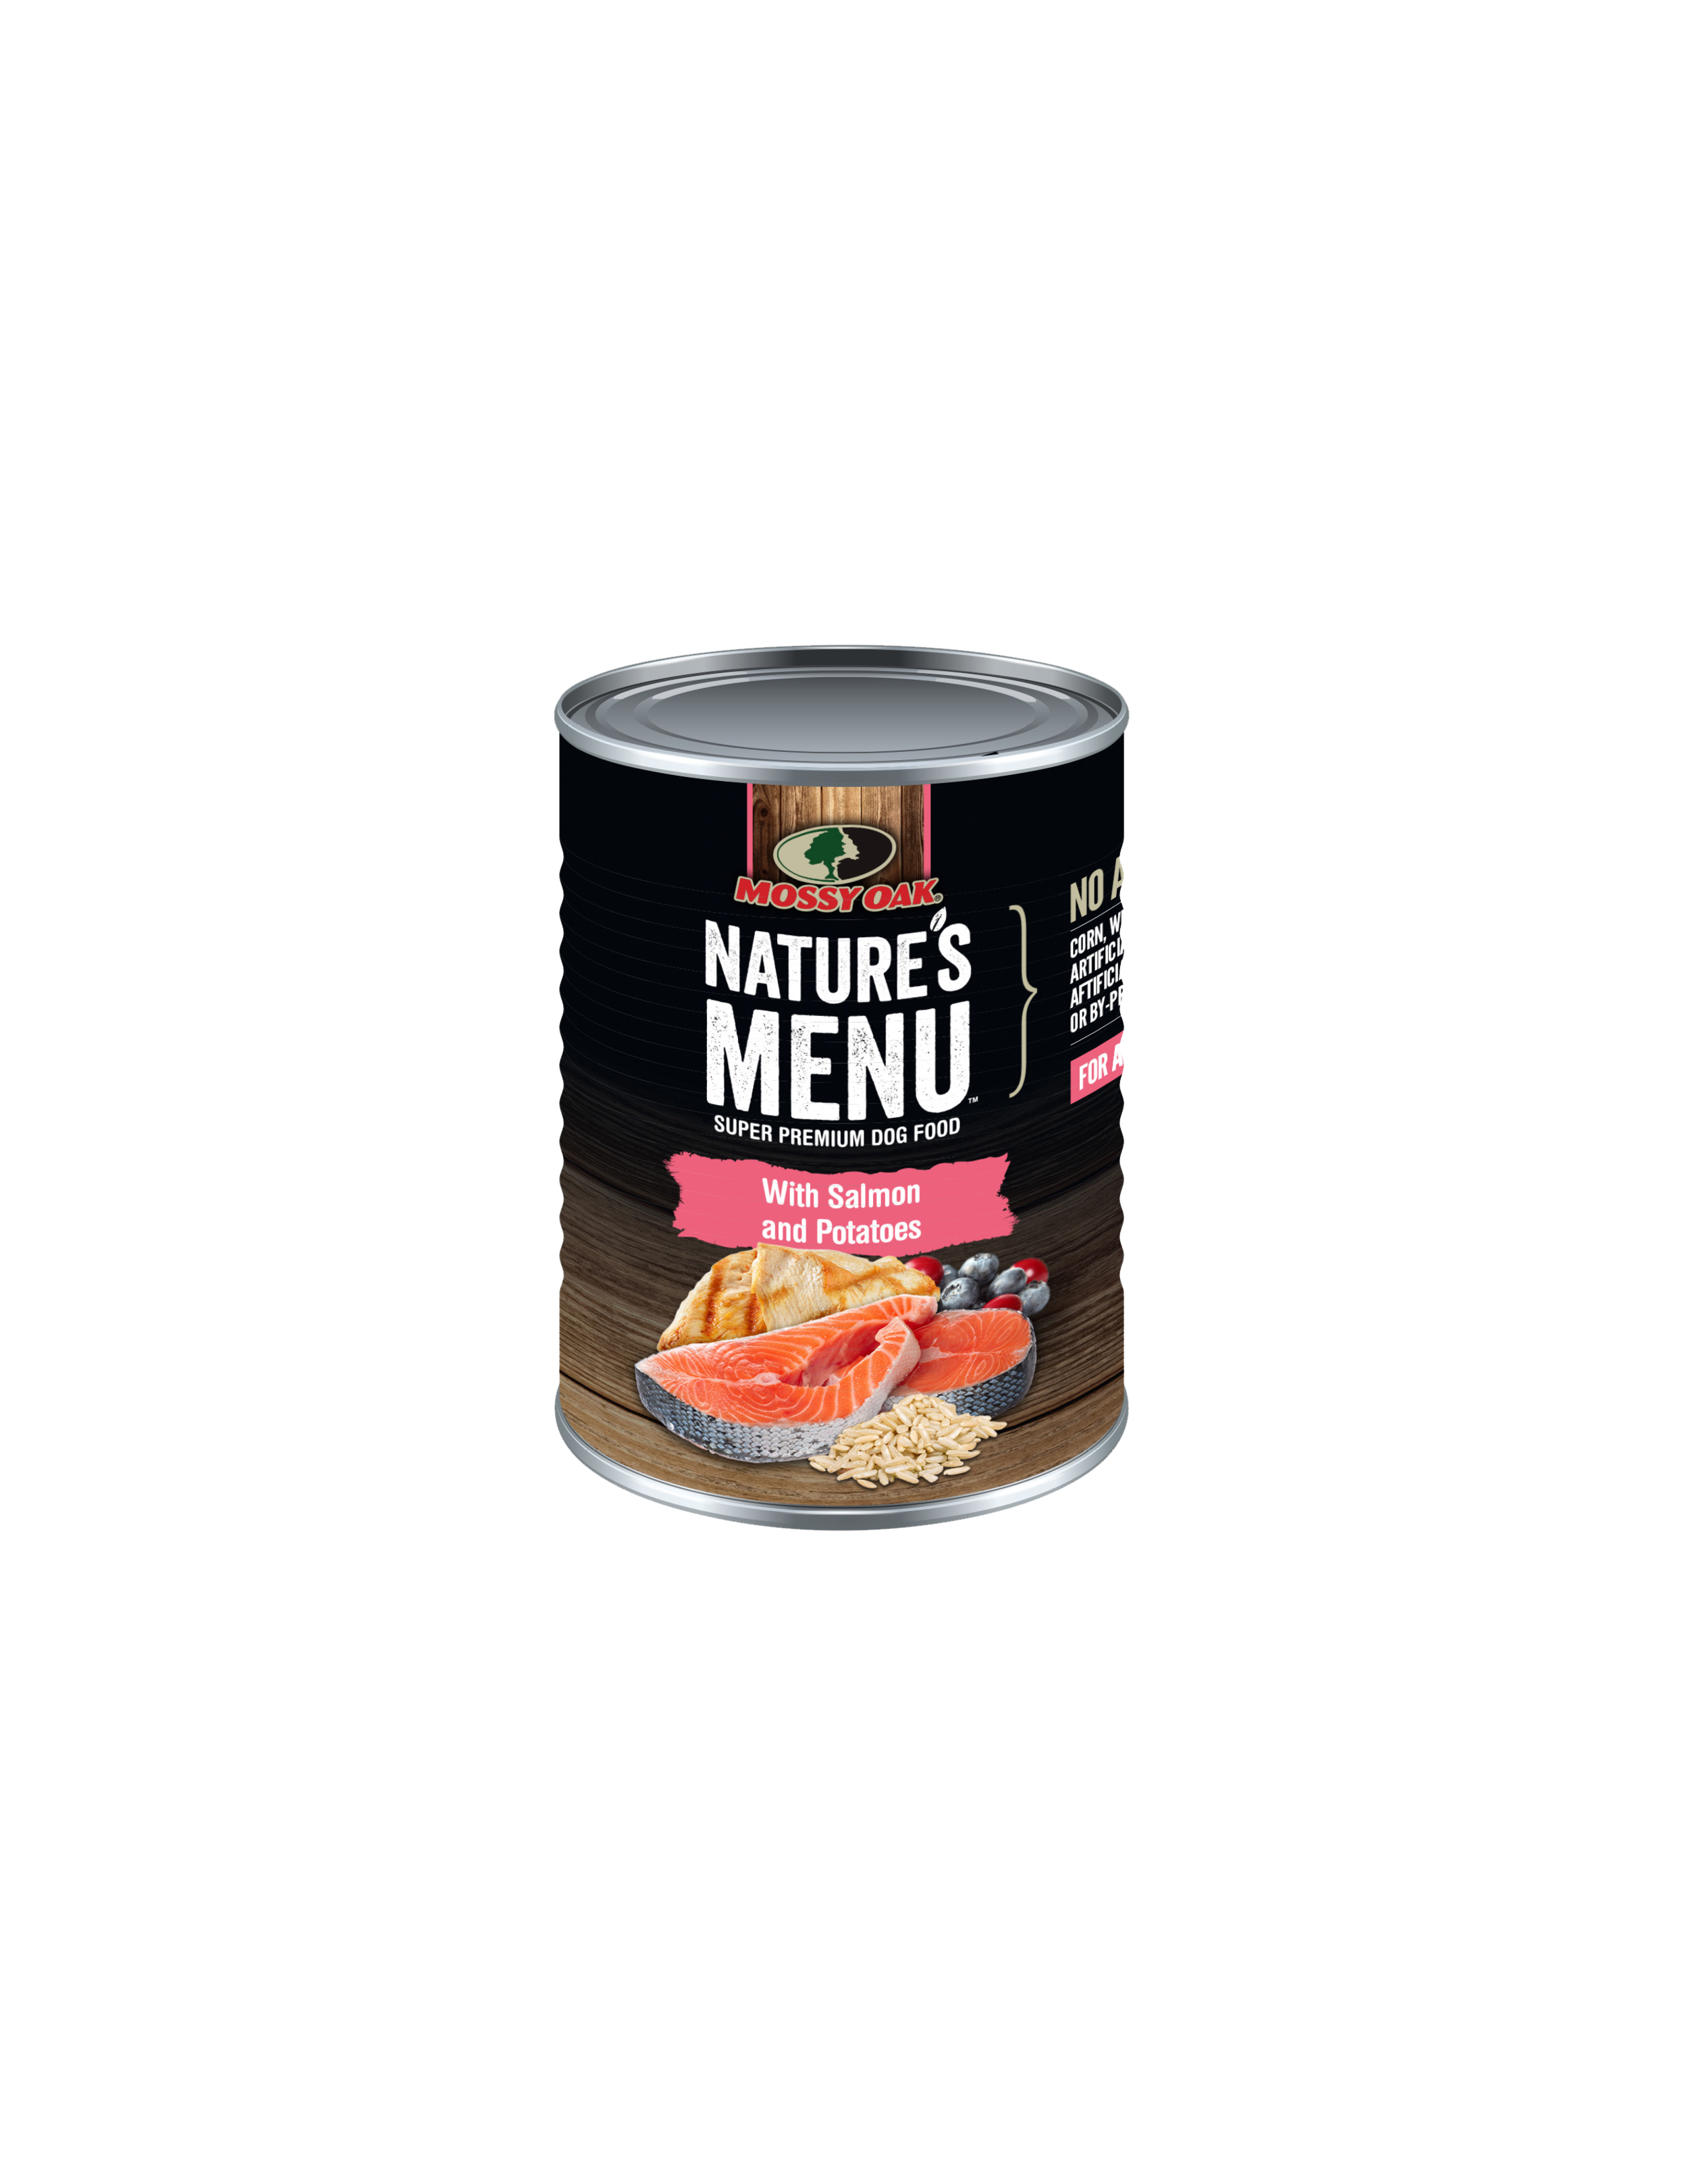 Mossy Oak Natures Menu Super Premium Dog Food - Canned Salmon and Potatoes LARGE.png